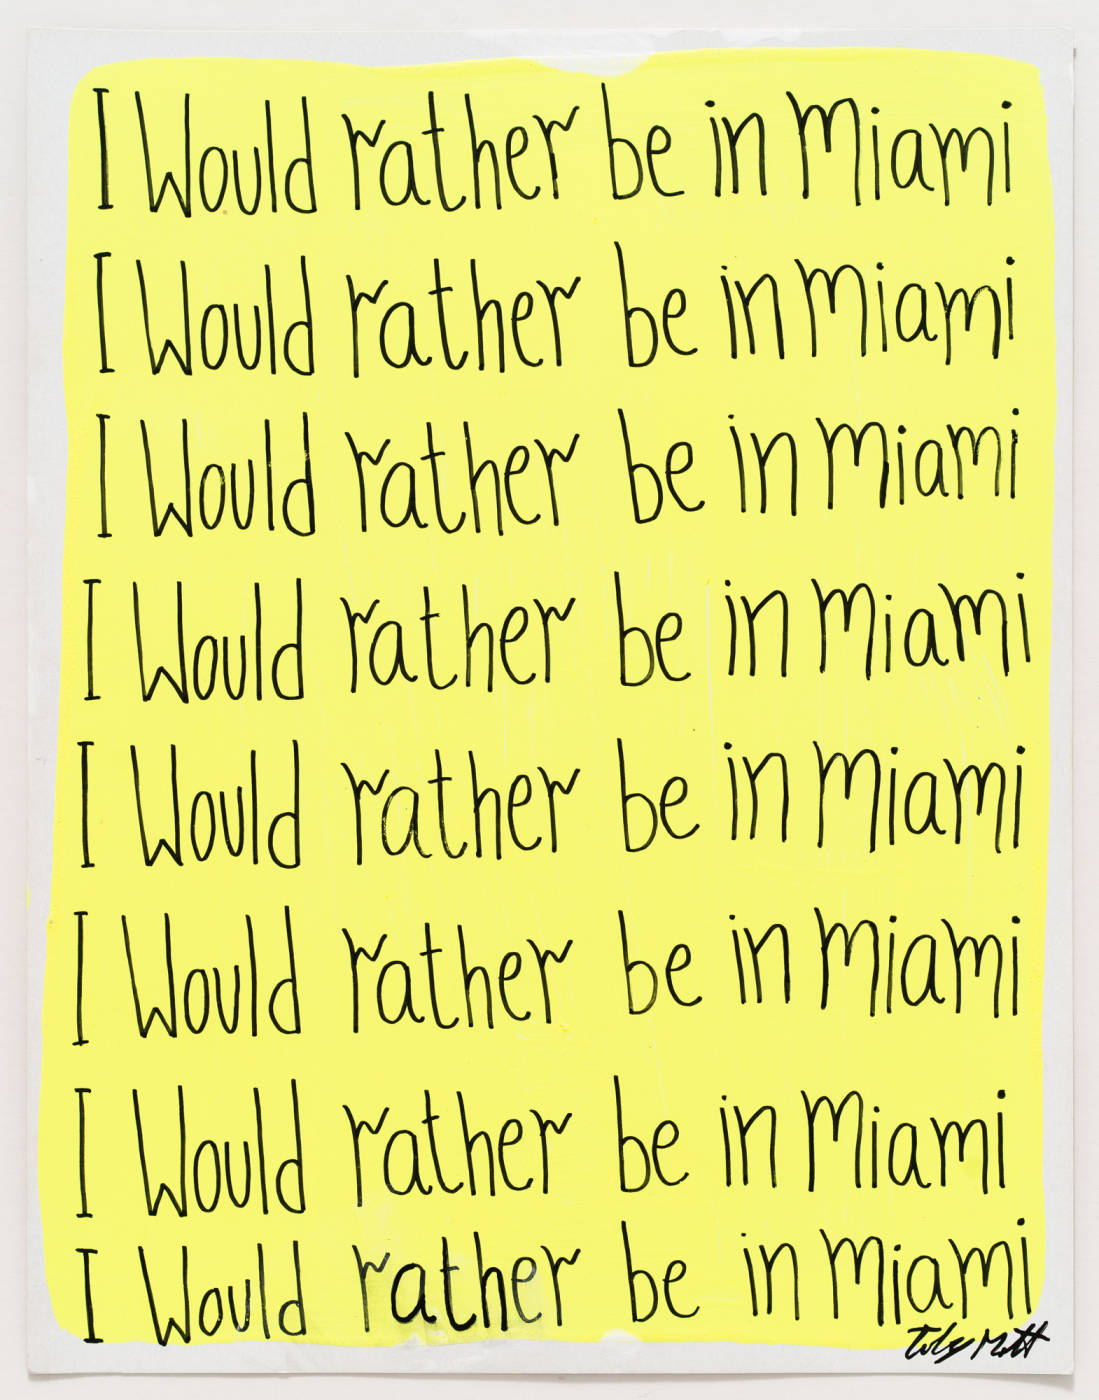 I would rather be in Miami